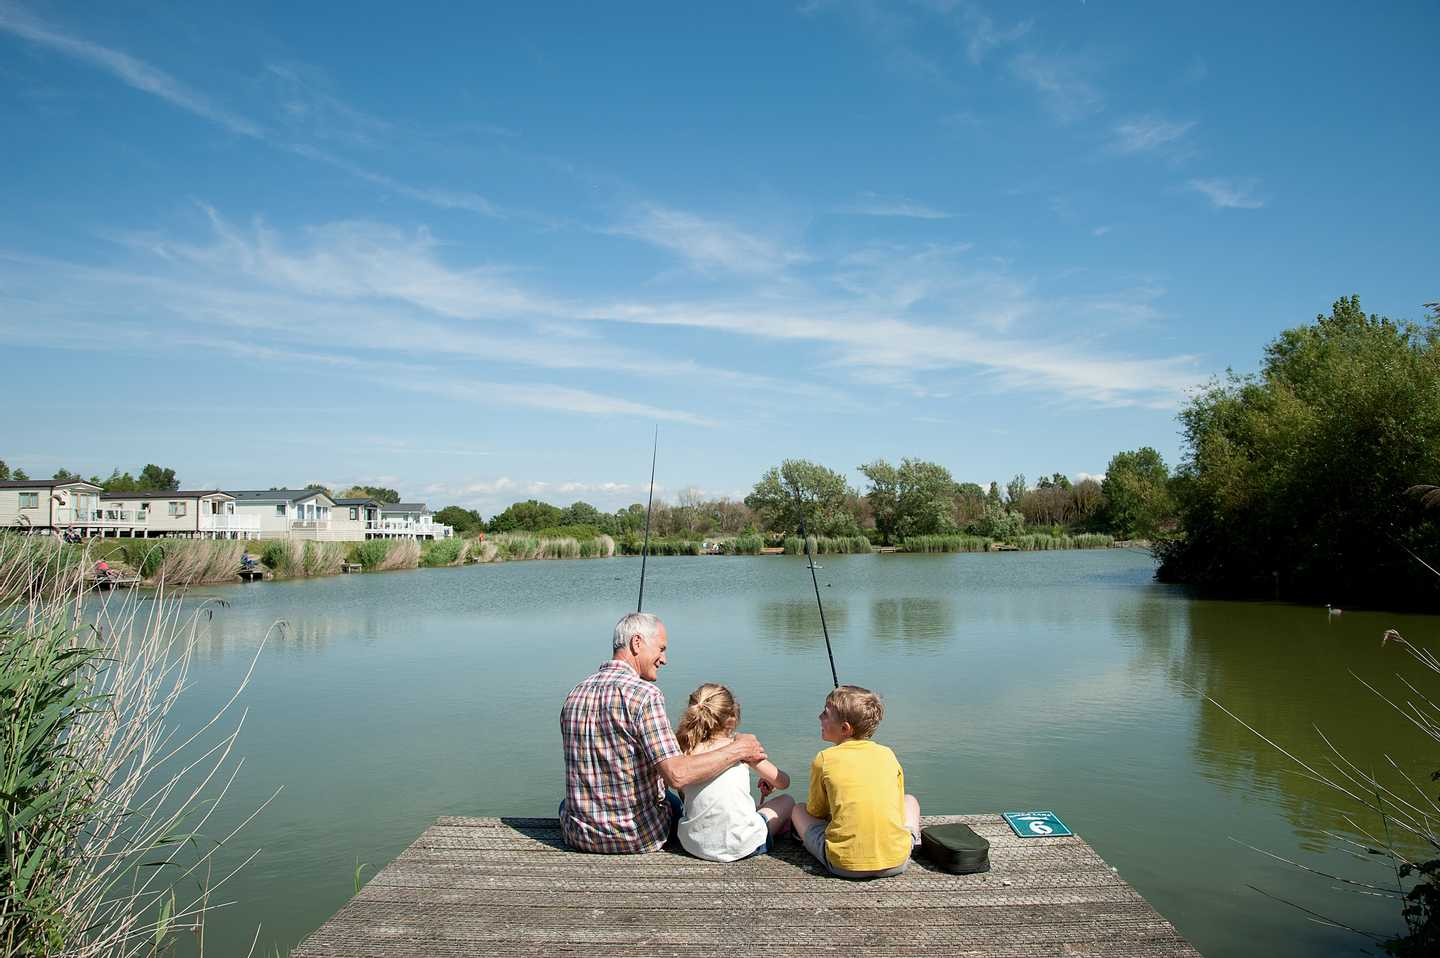 Guests relaxing by the edge of the fishing lake at Burnham-on-Sea